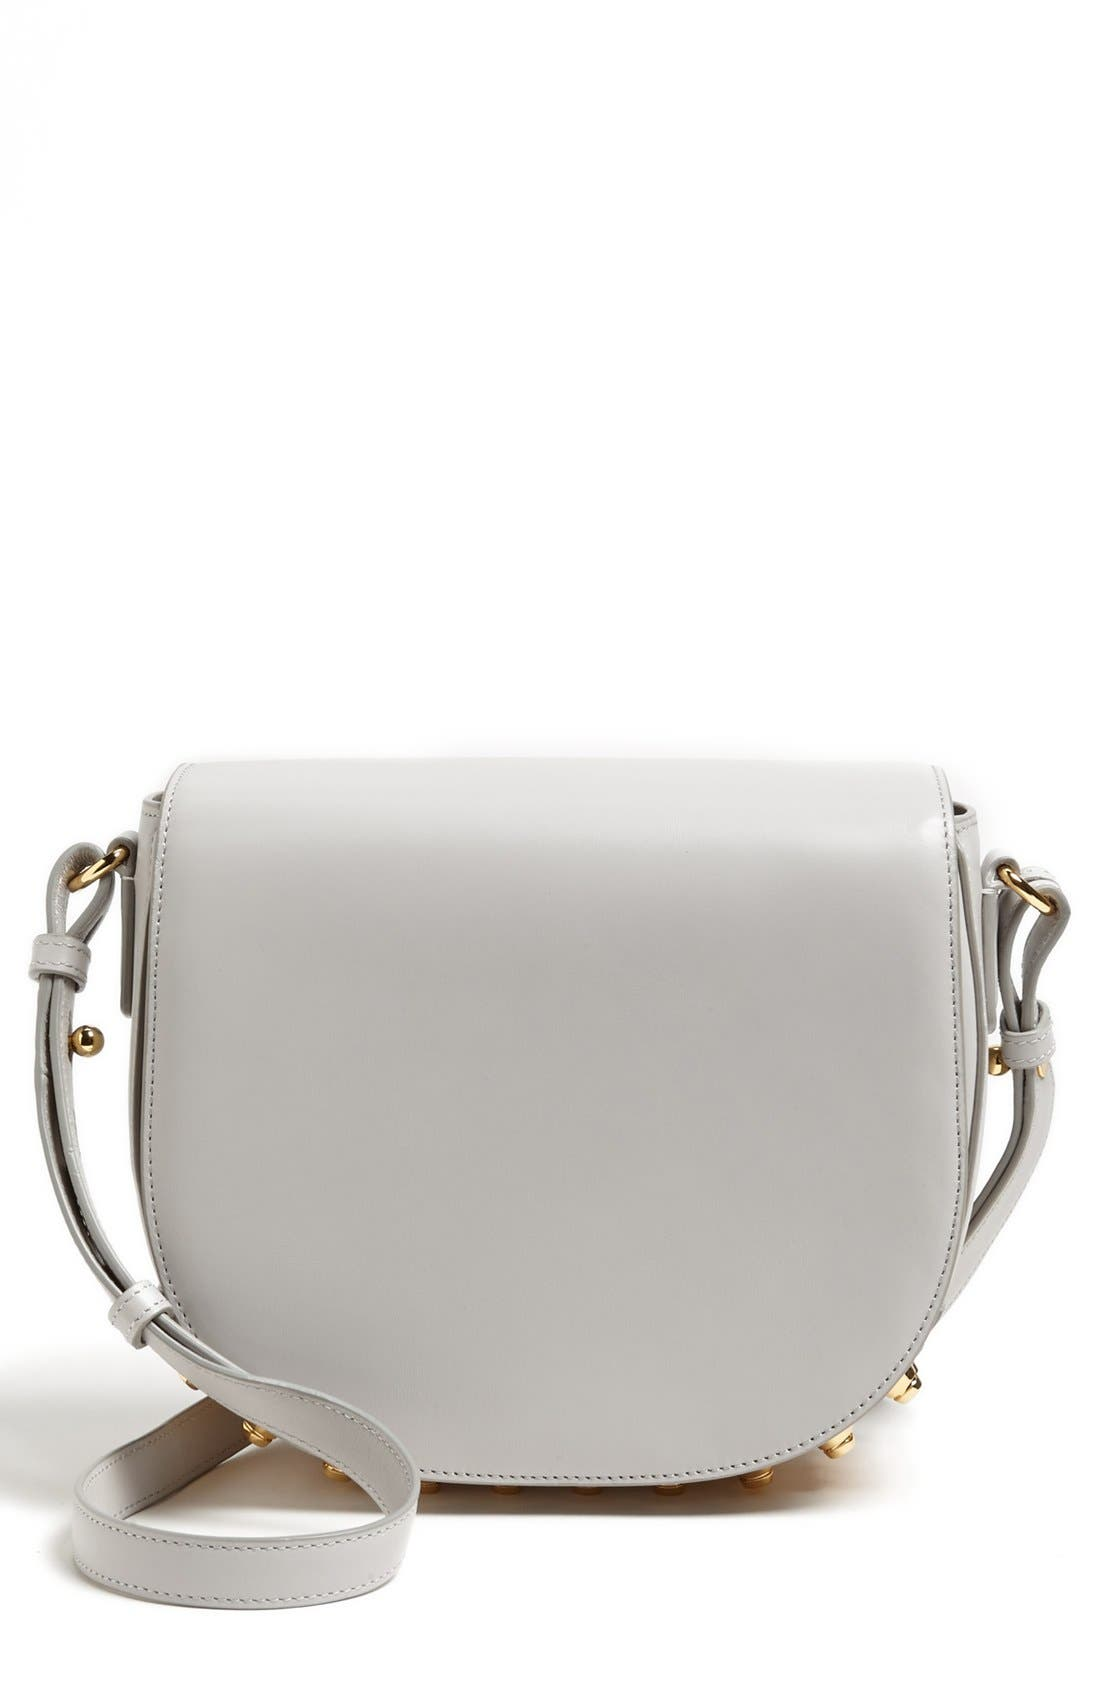 Alternate Image 1 Selected - Alexander Wang 'Lia - Small' Leather Crossbody Bag